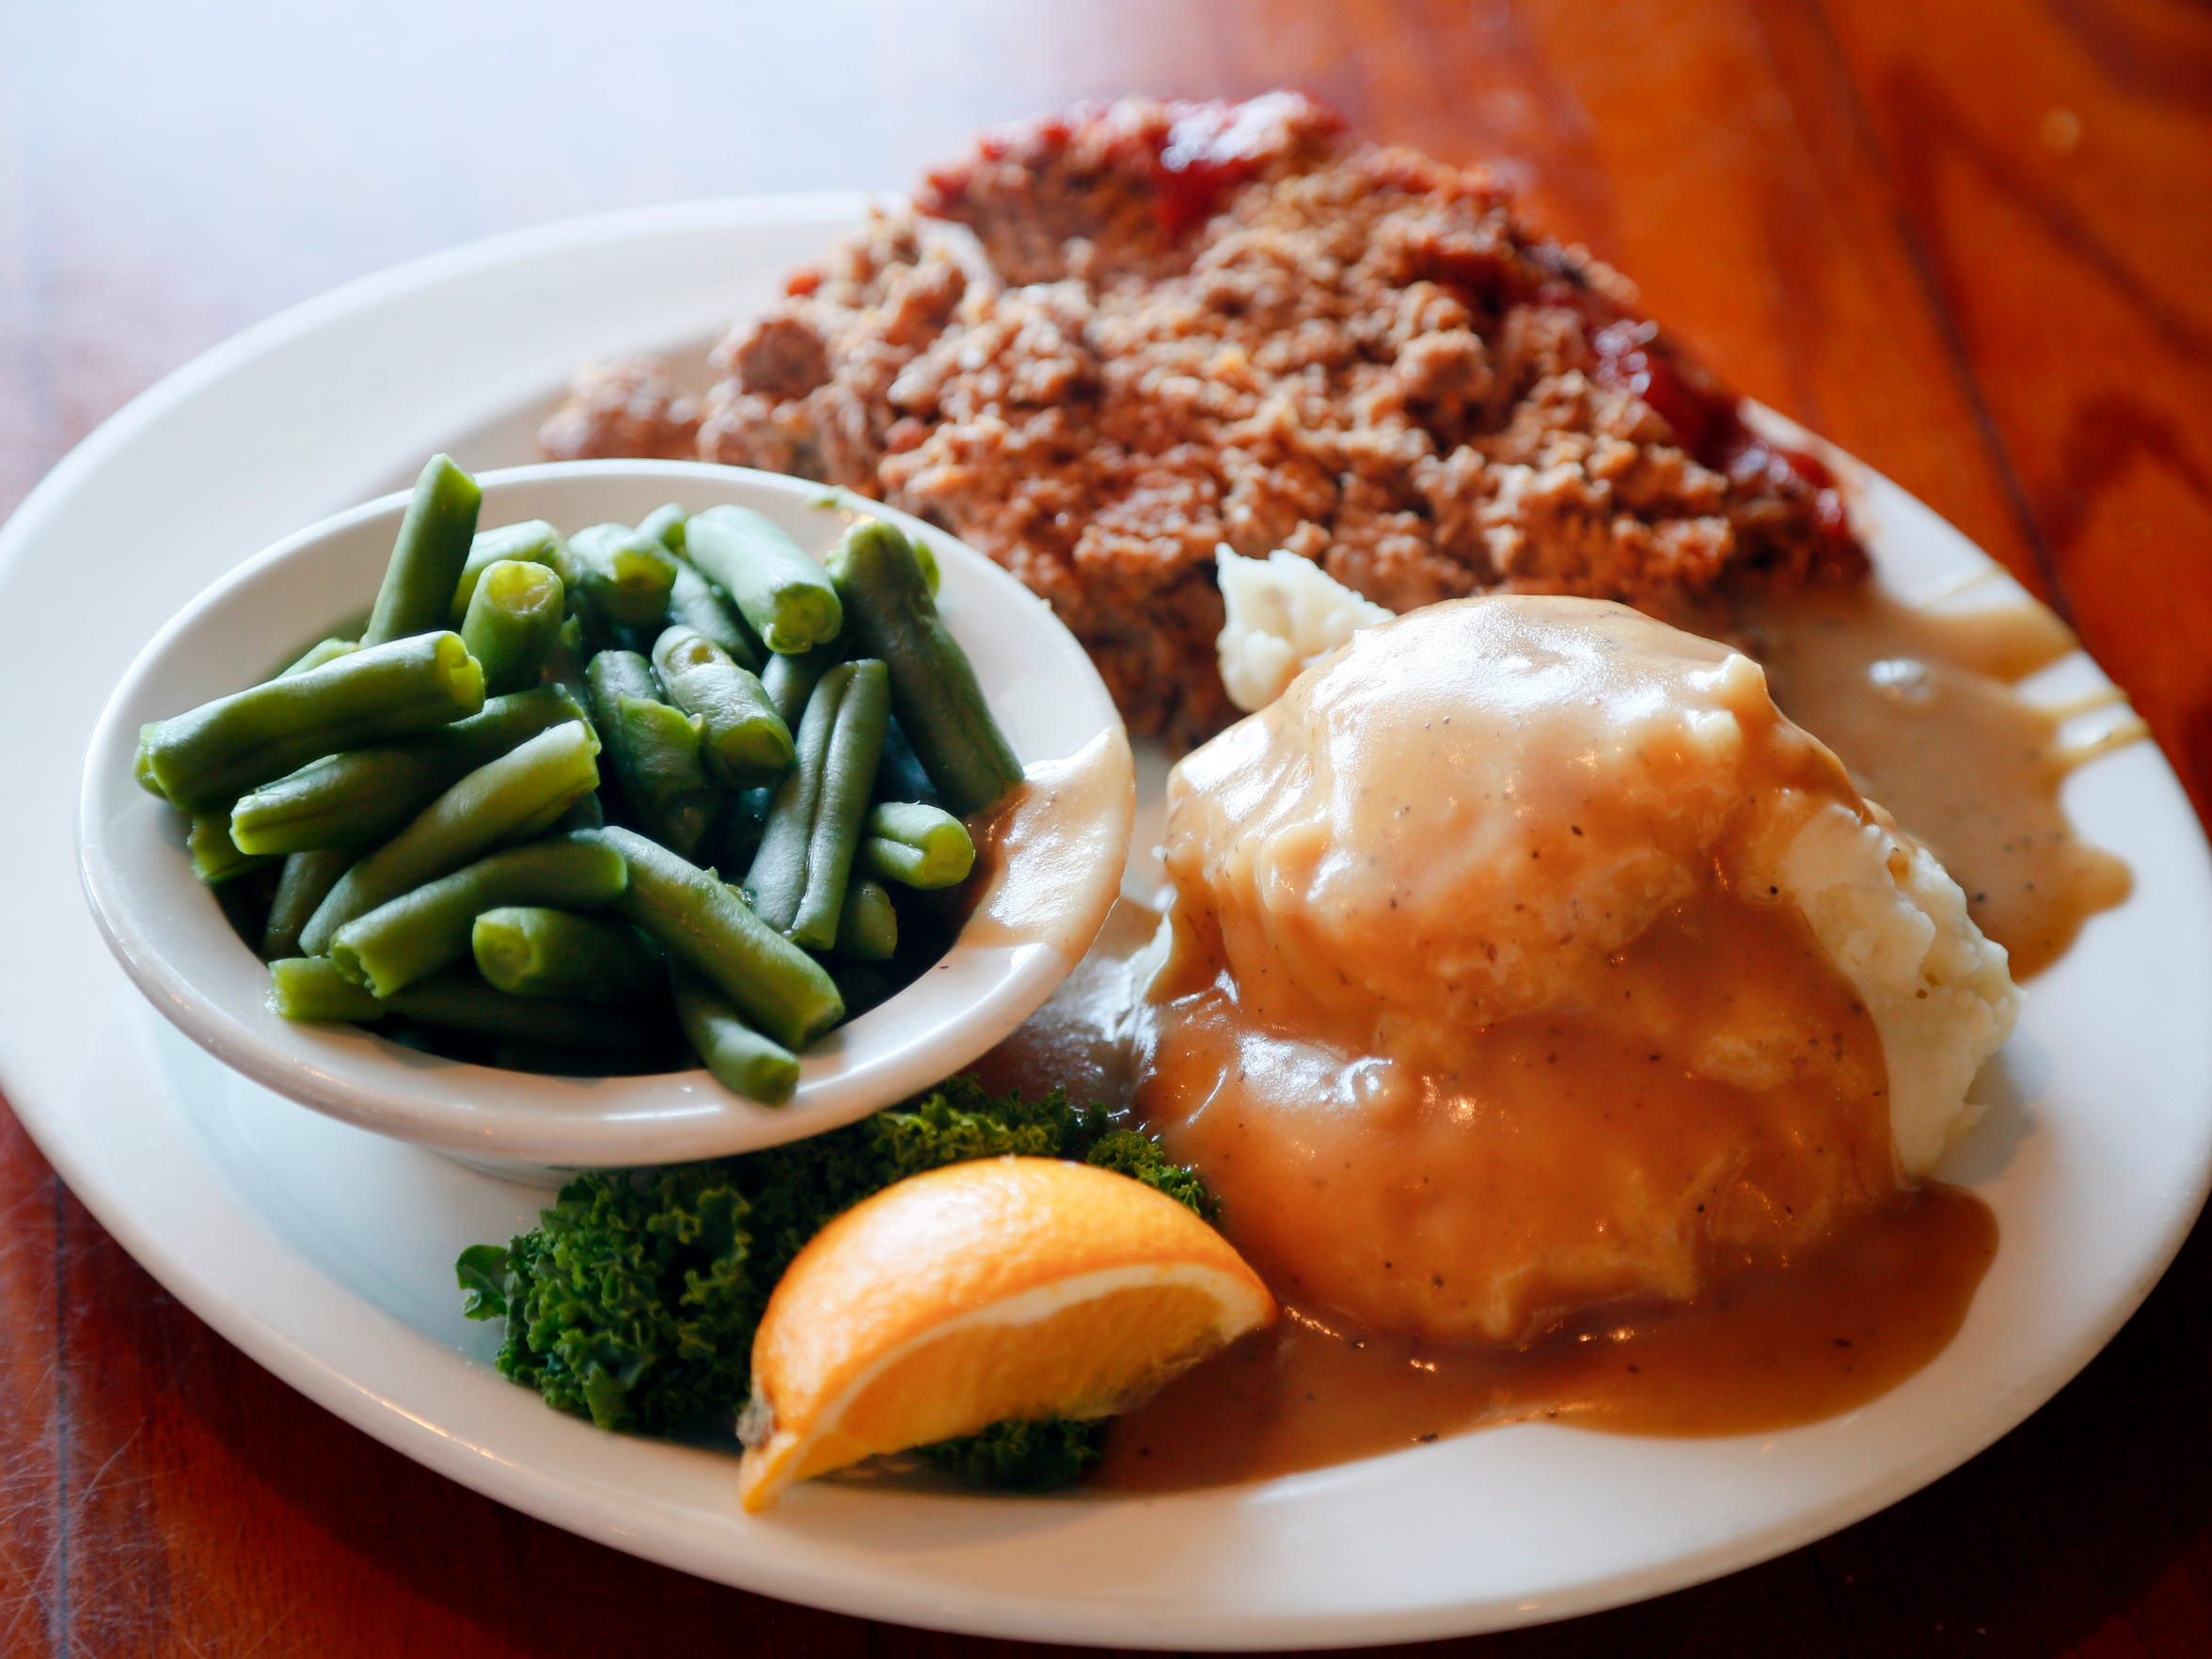 The meatloaf special with mashed potatoes and beans at Riefe's in Davenport photographed Tuesday, Nov. 24, 2015. The restaurant will be closing this month after 66 years in business.